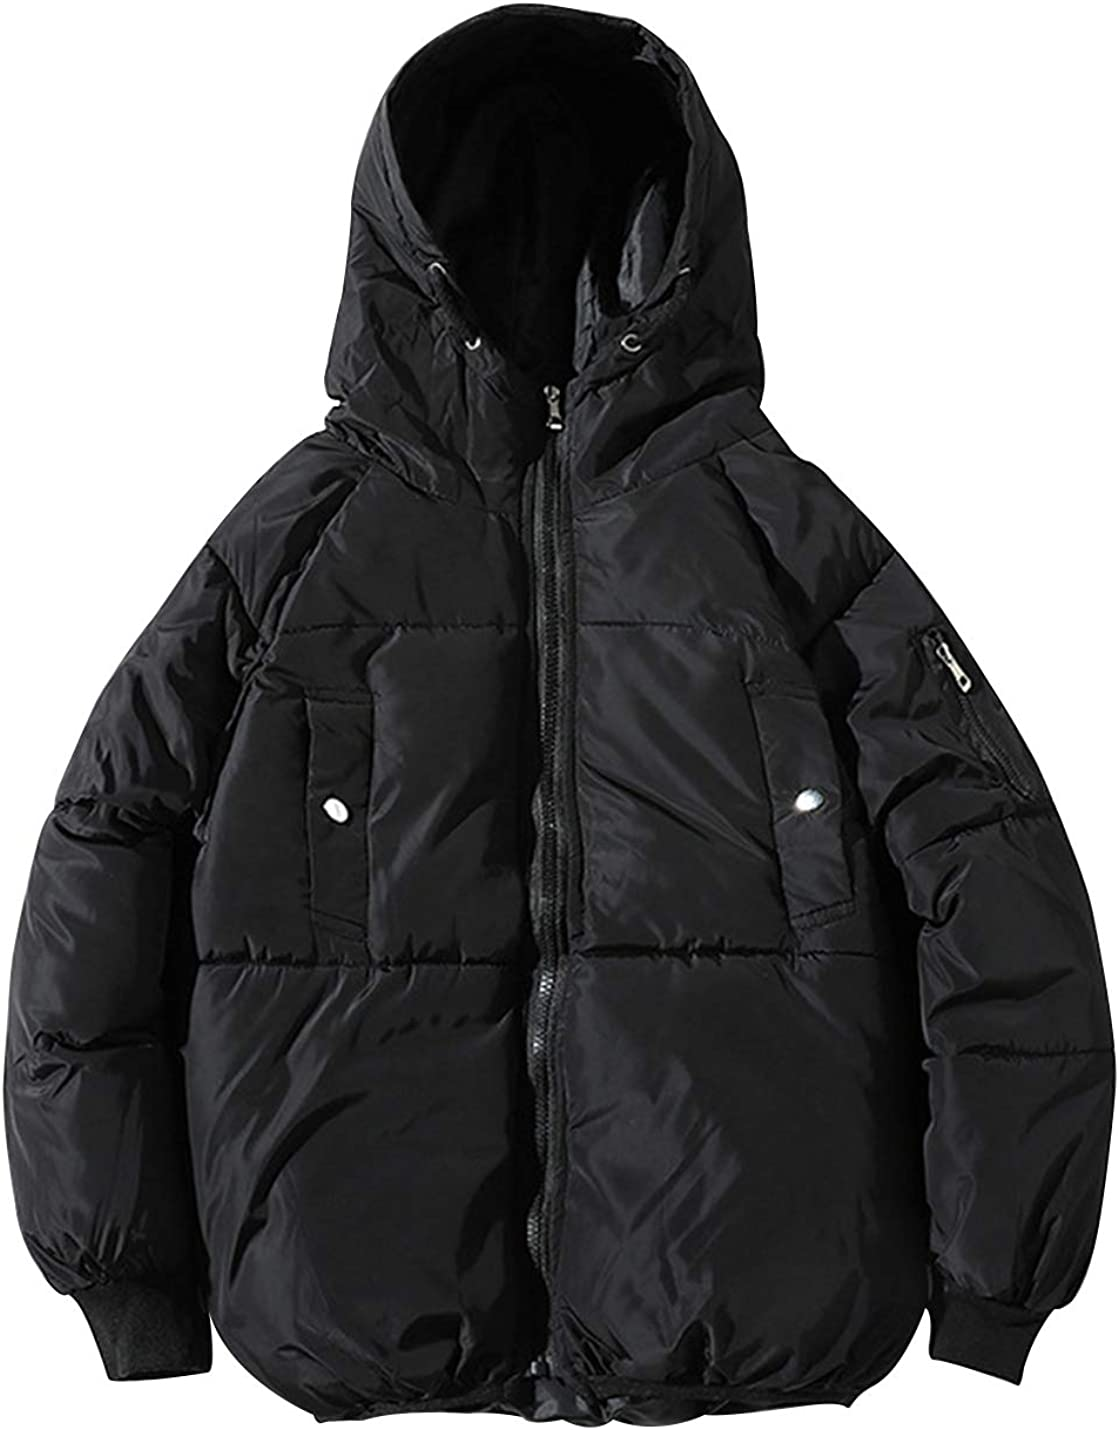 Gihuo Men's Thick Warm Padded Hooded Puffer Jacket Outerwear